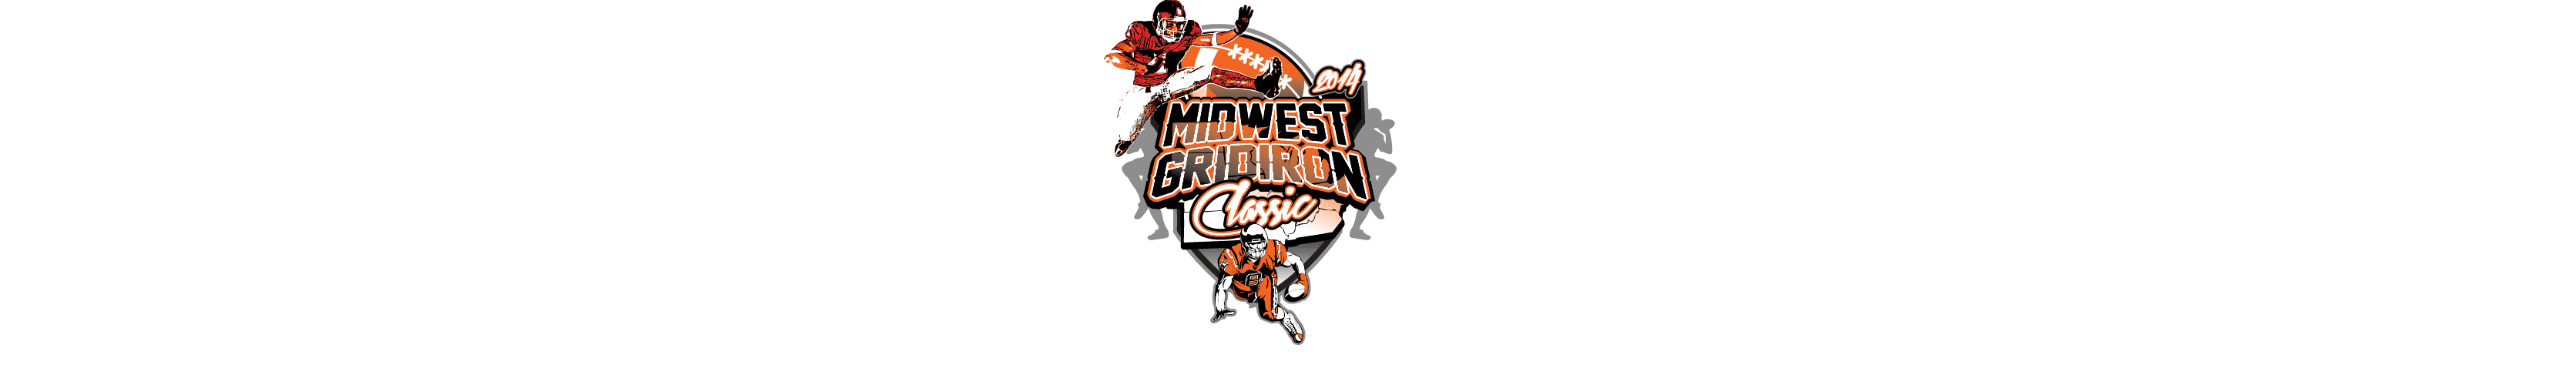 VECTOR LOGO DESIGN FOR PRINT MIDWEST GRIDIRON CLASSIC FOOTBALL EVENT